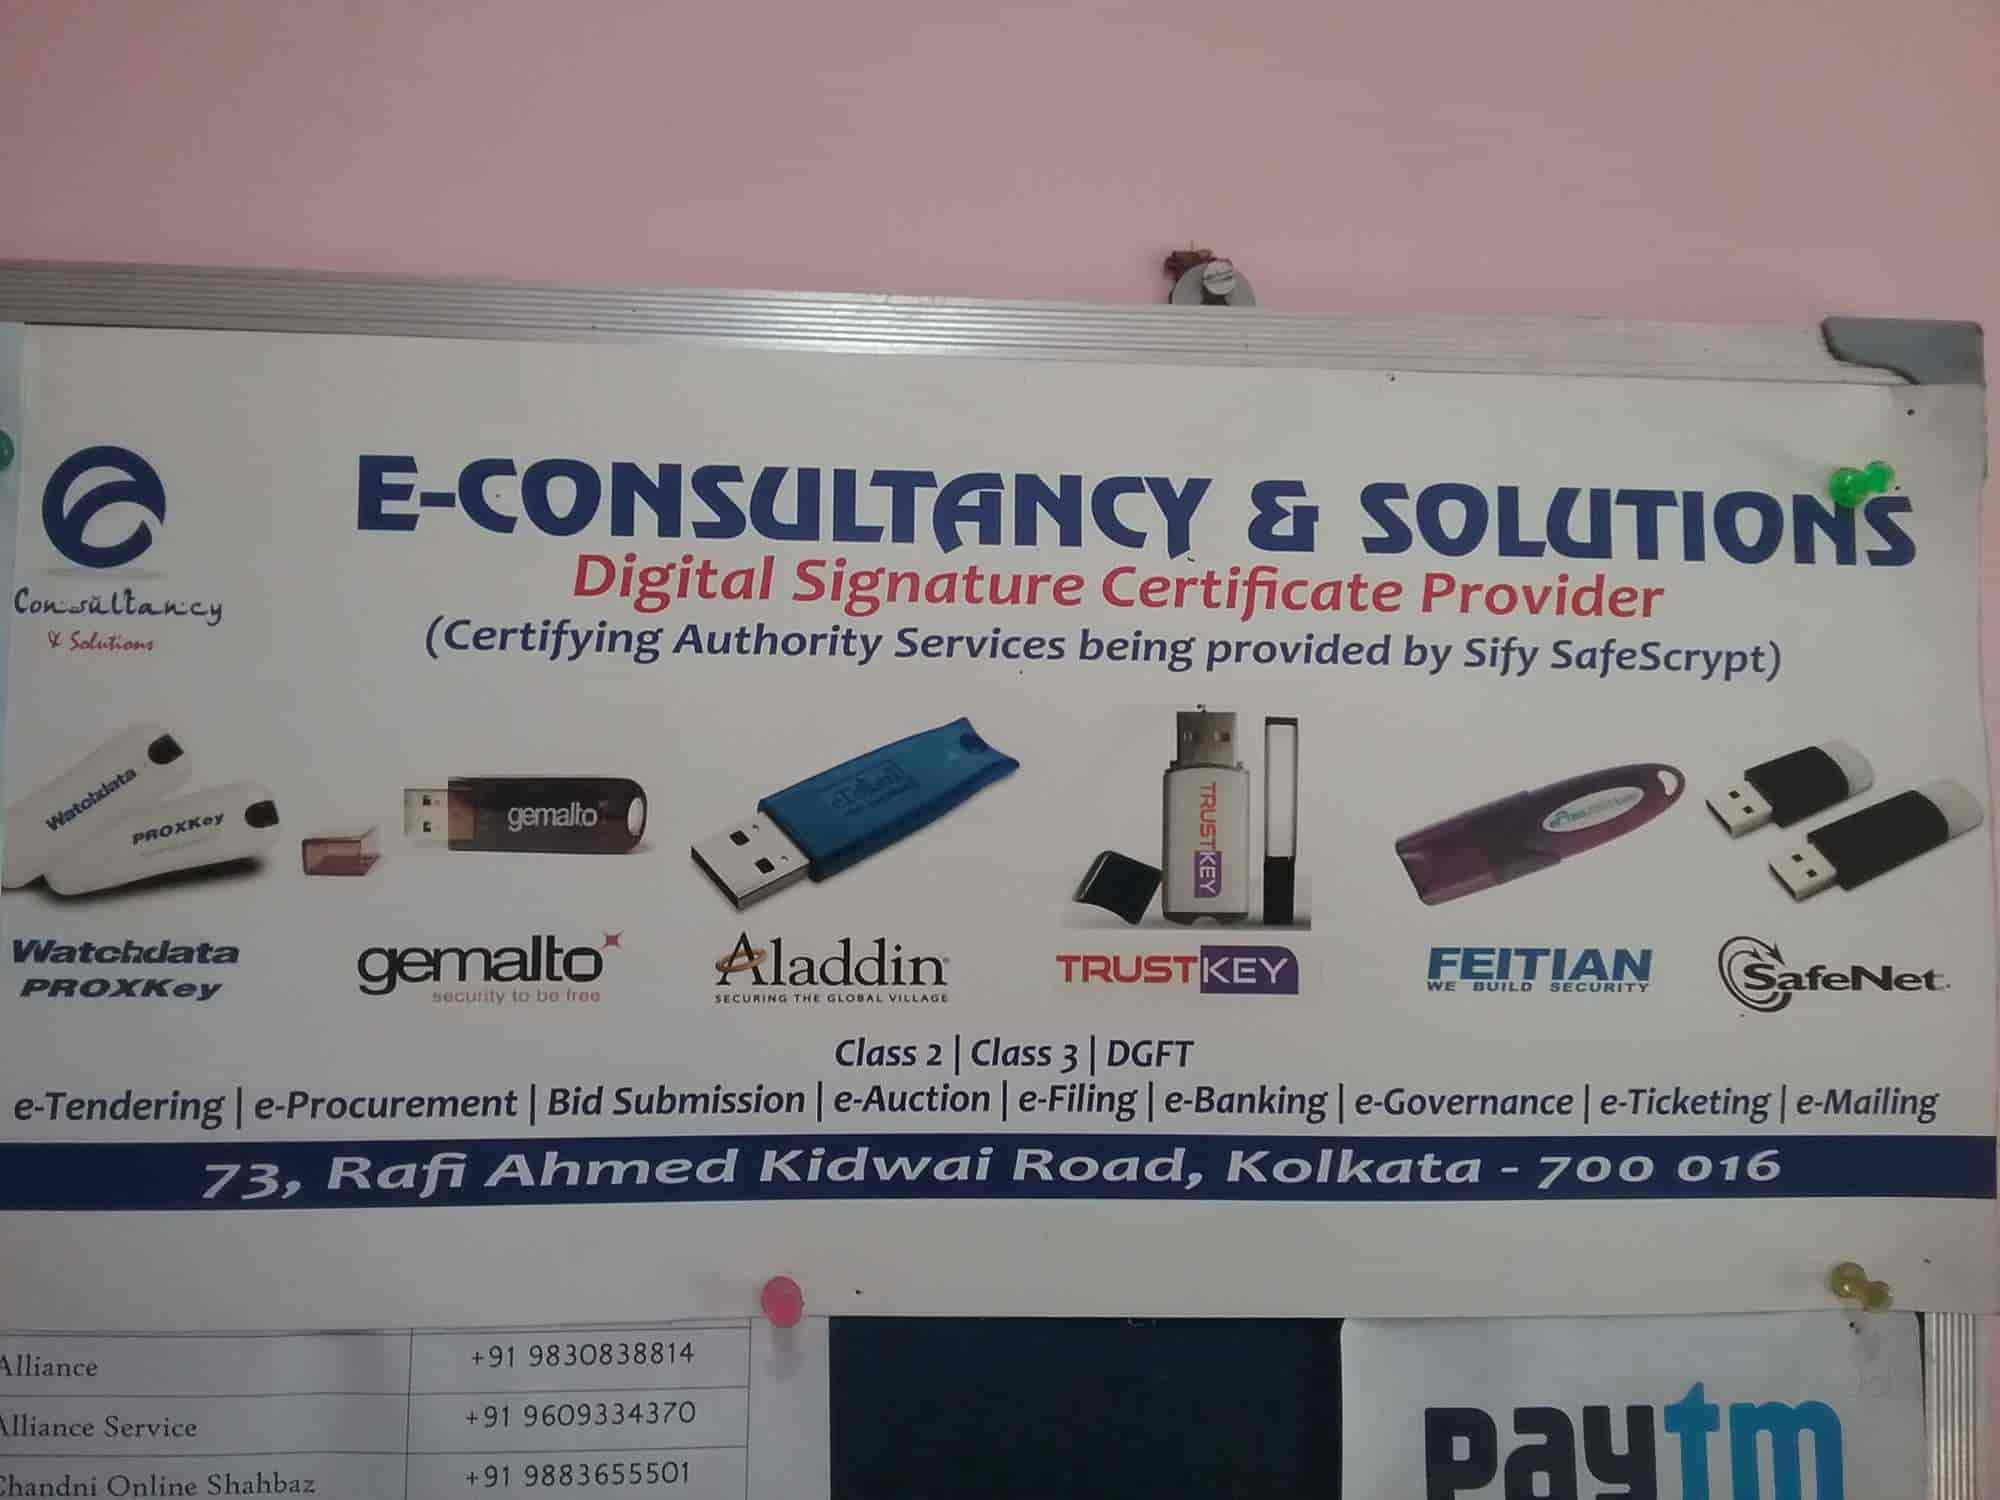 E Consultancy And Solution, Park Street - Digital Signature